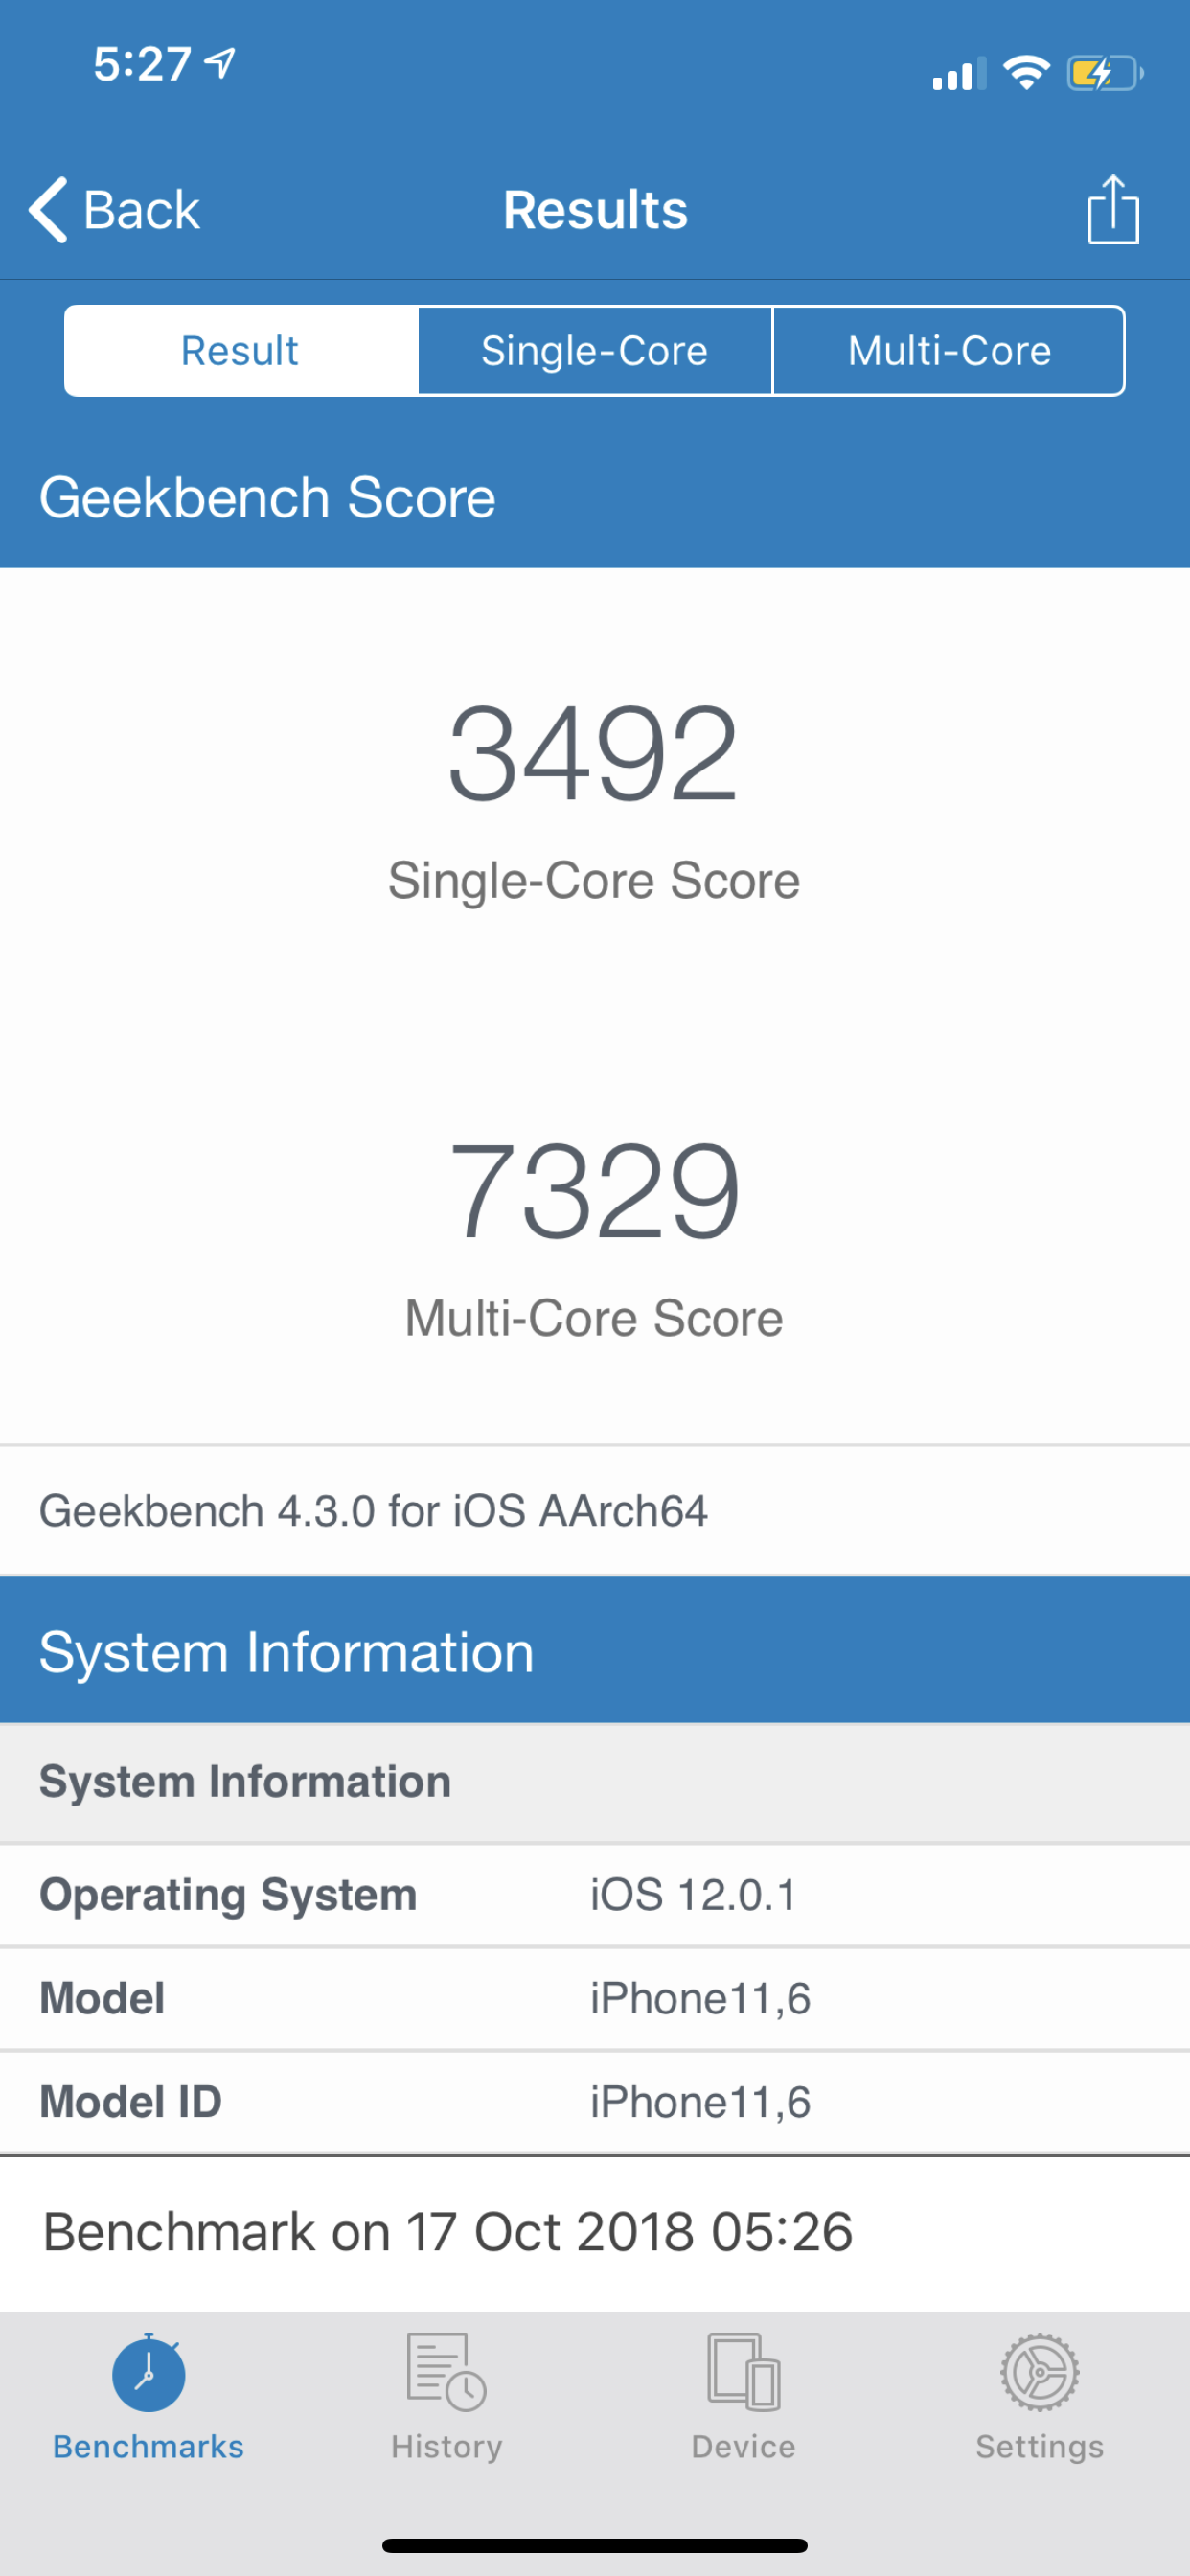 geekbench 2 license key